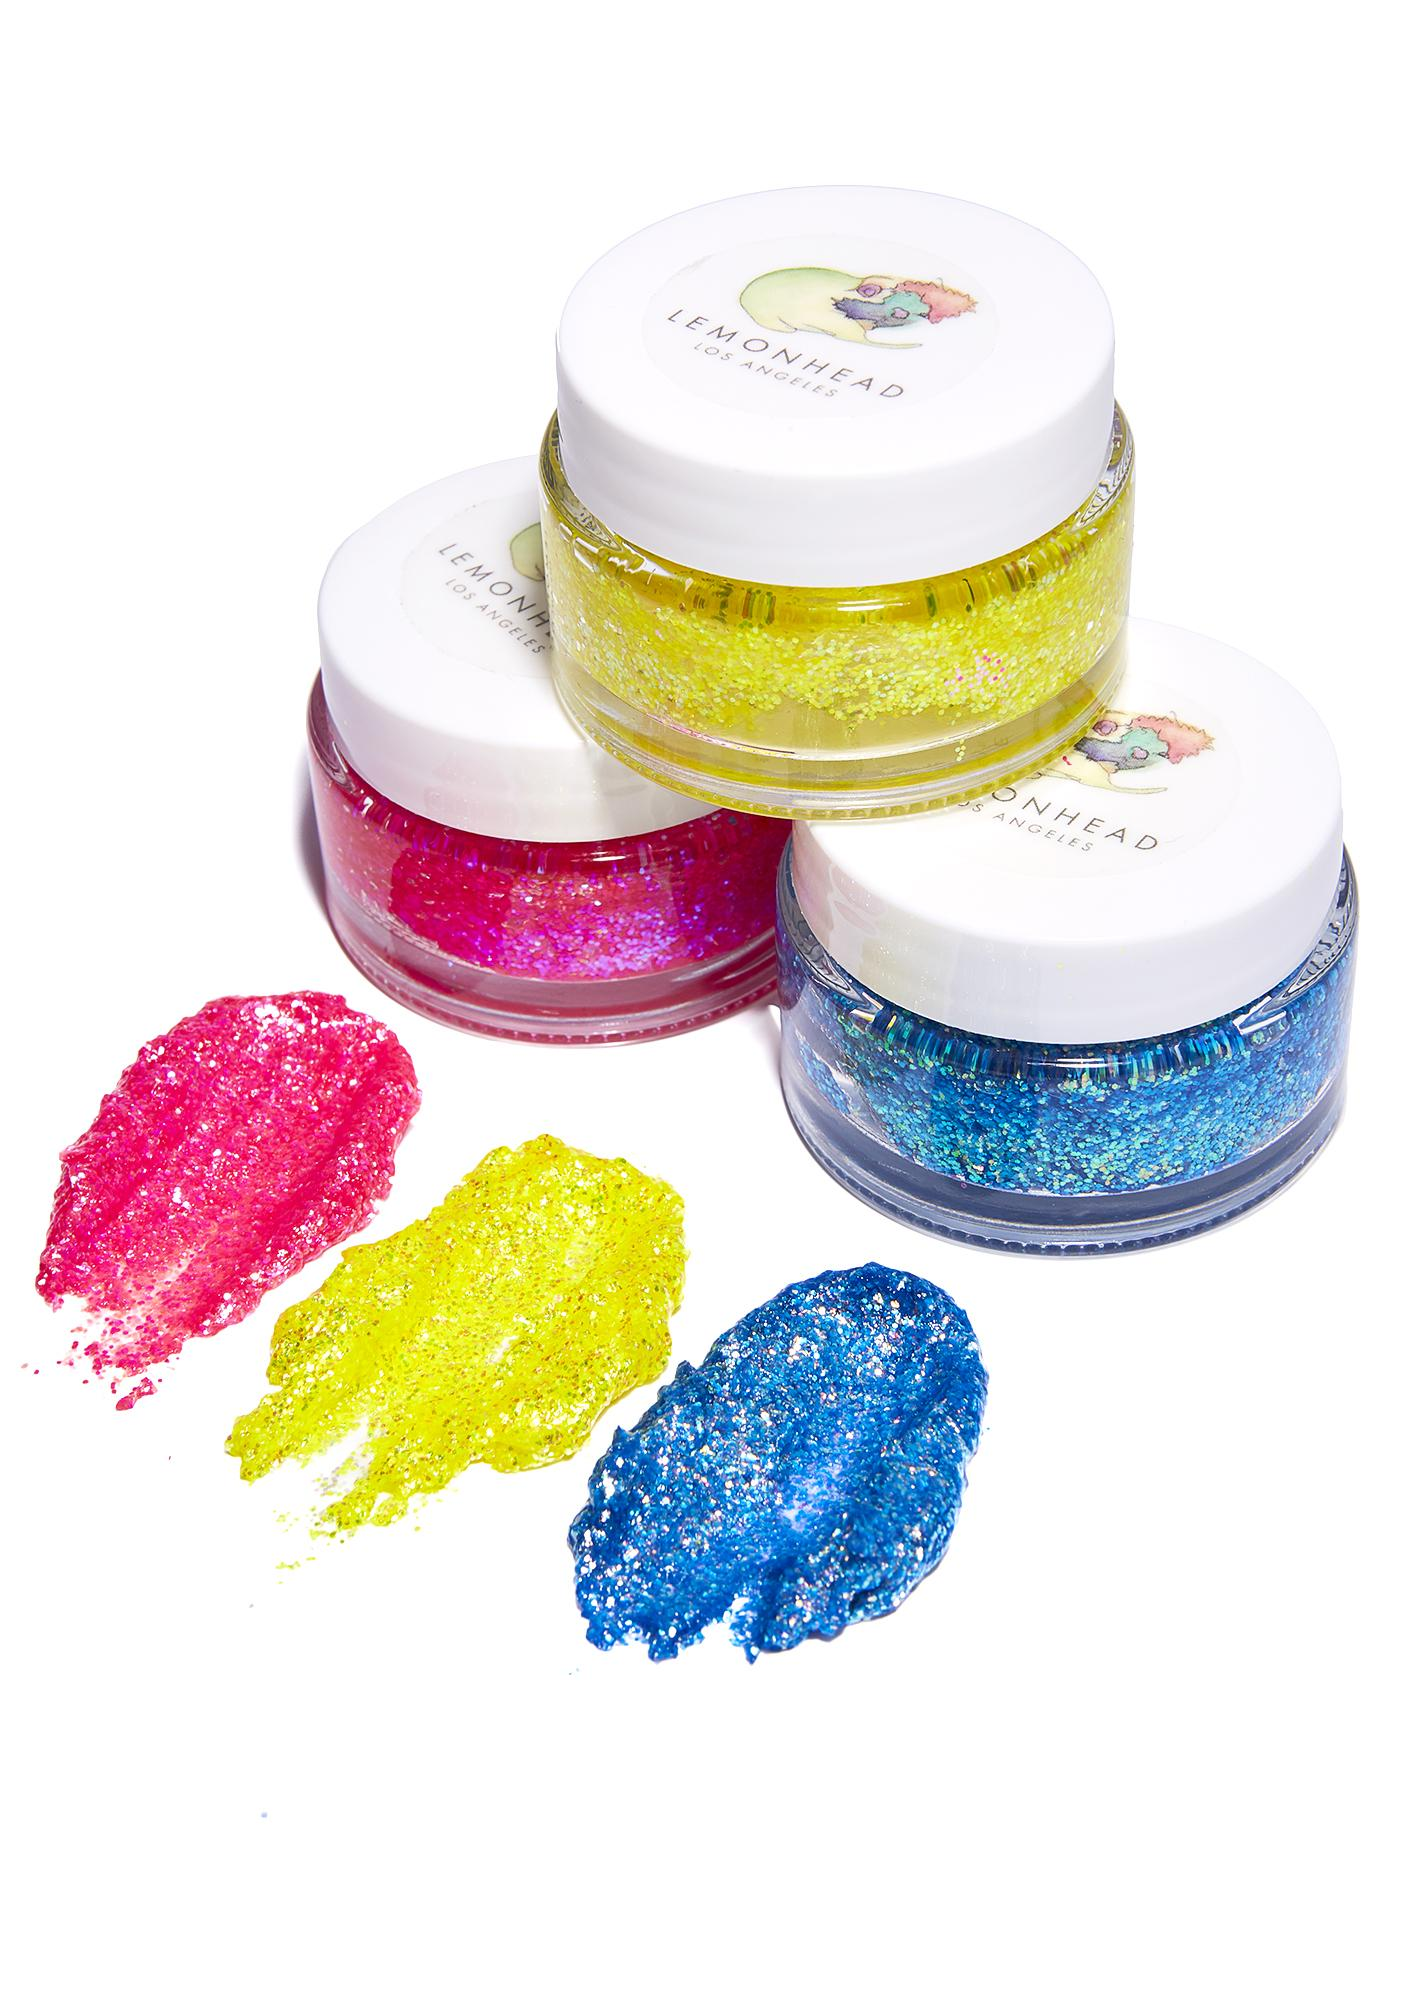 Lemonhead LA Angelyne UV Glowjam